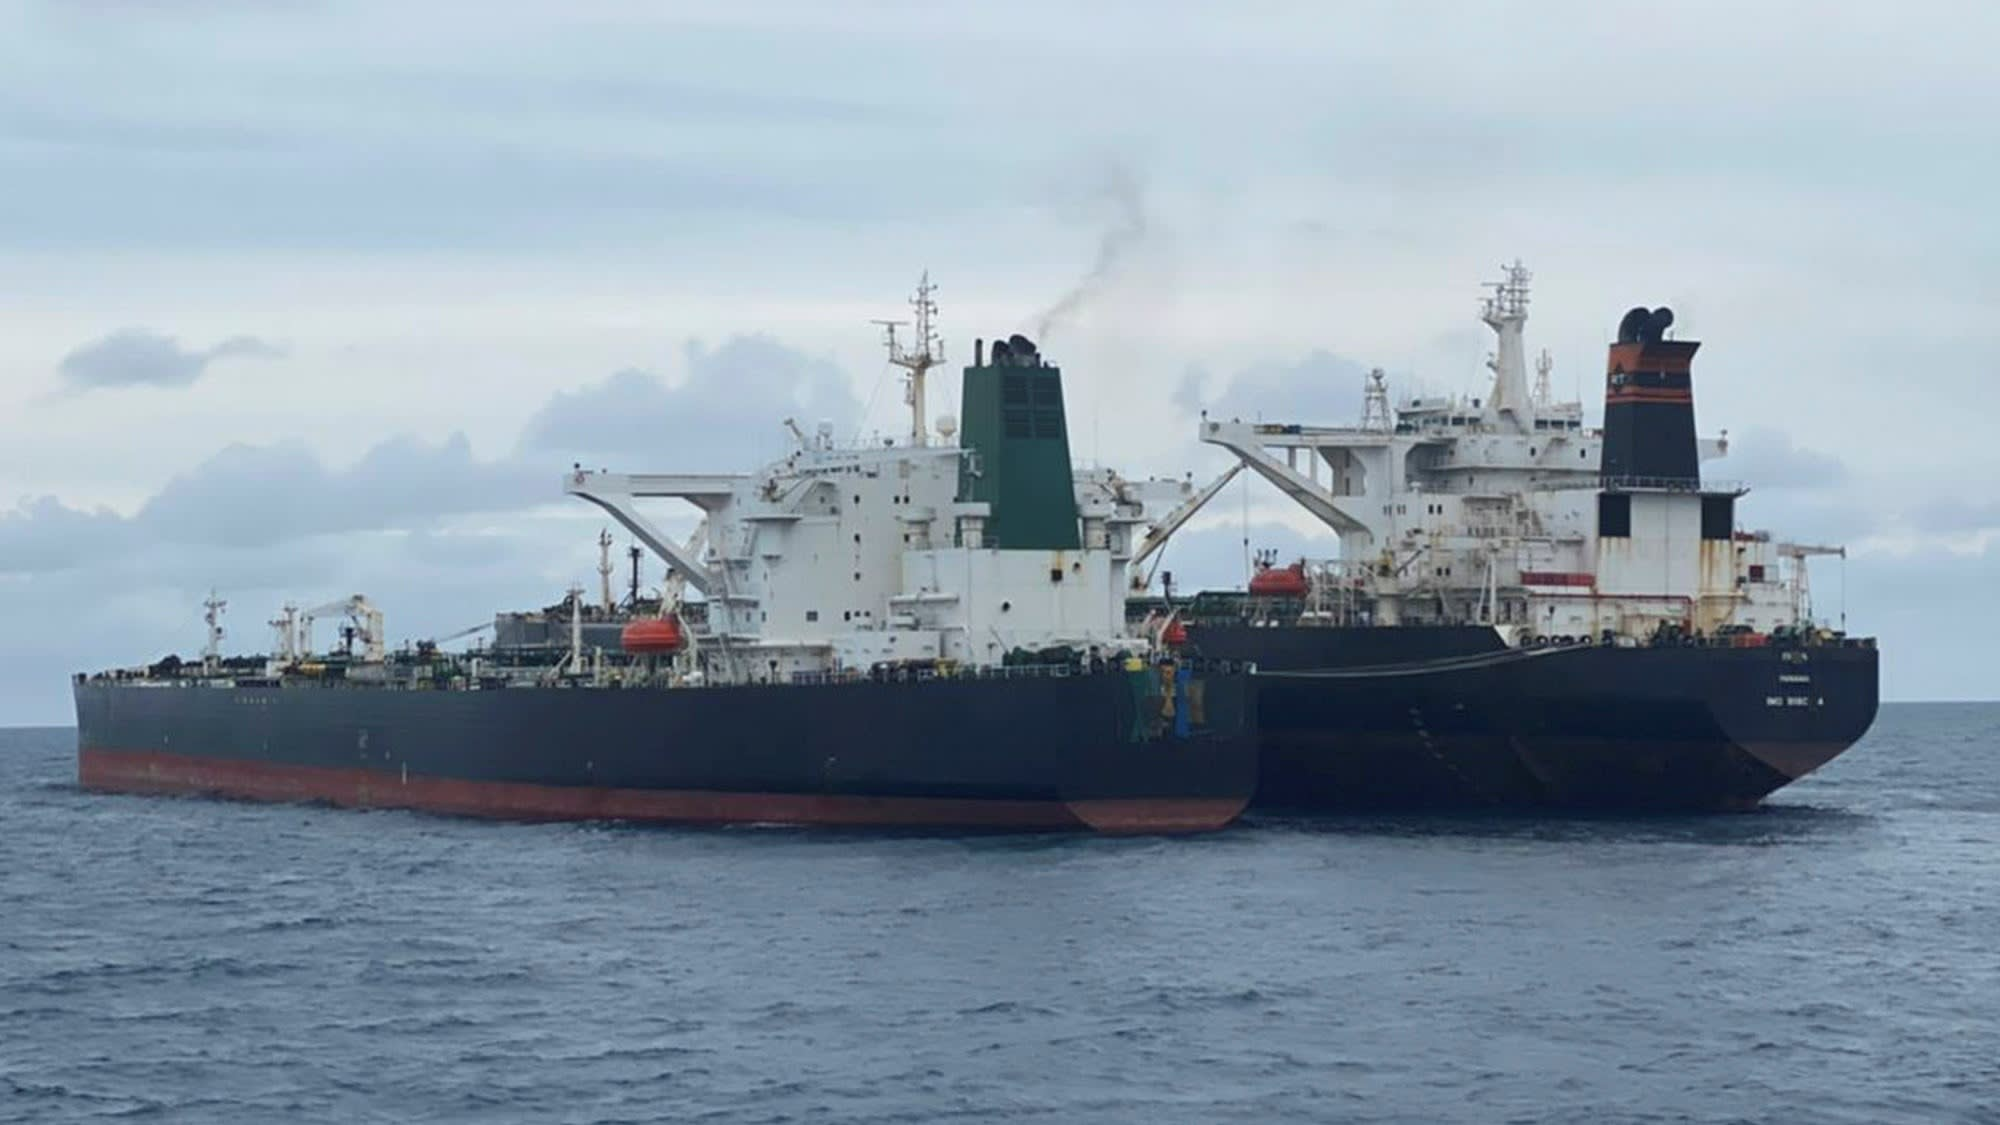 China seeks details about Chinese crew after tankers seized by Indonesia